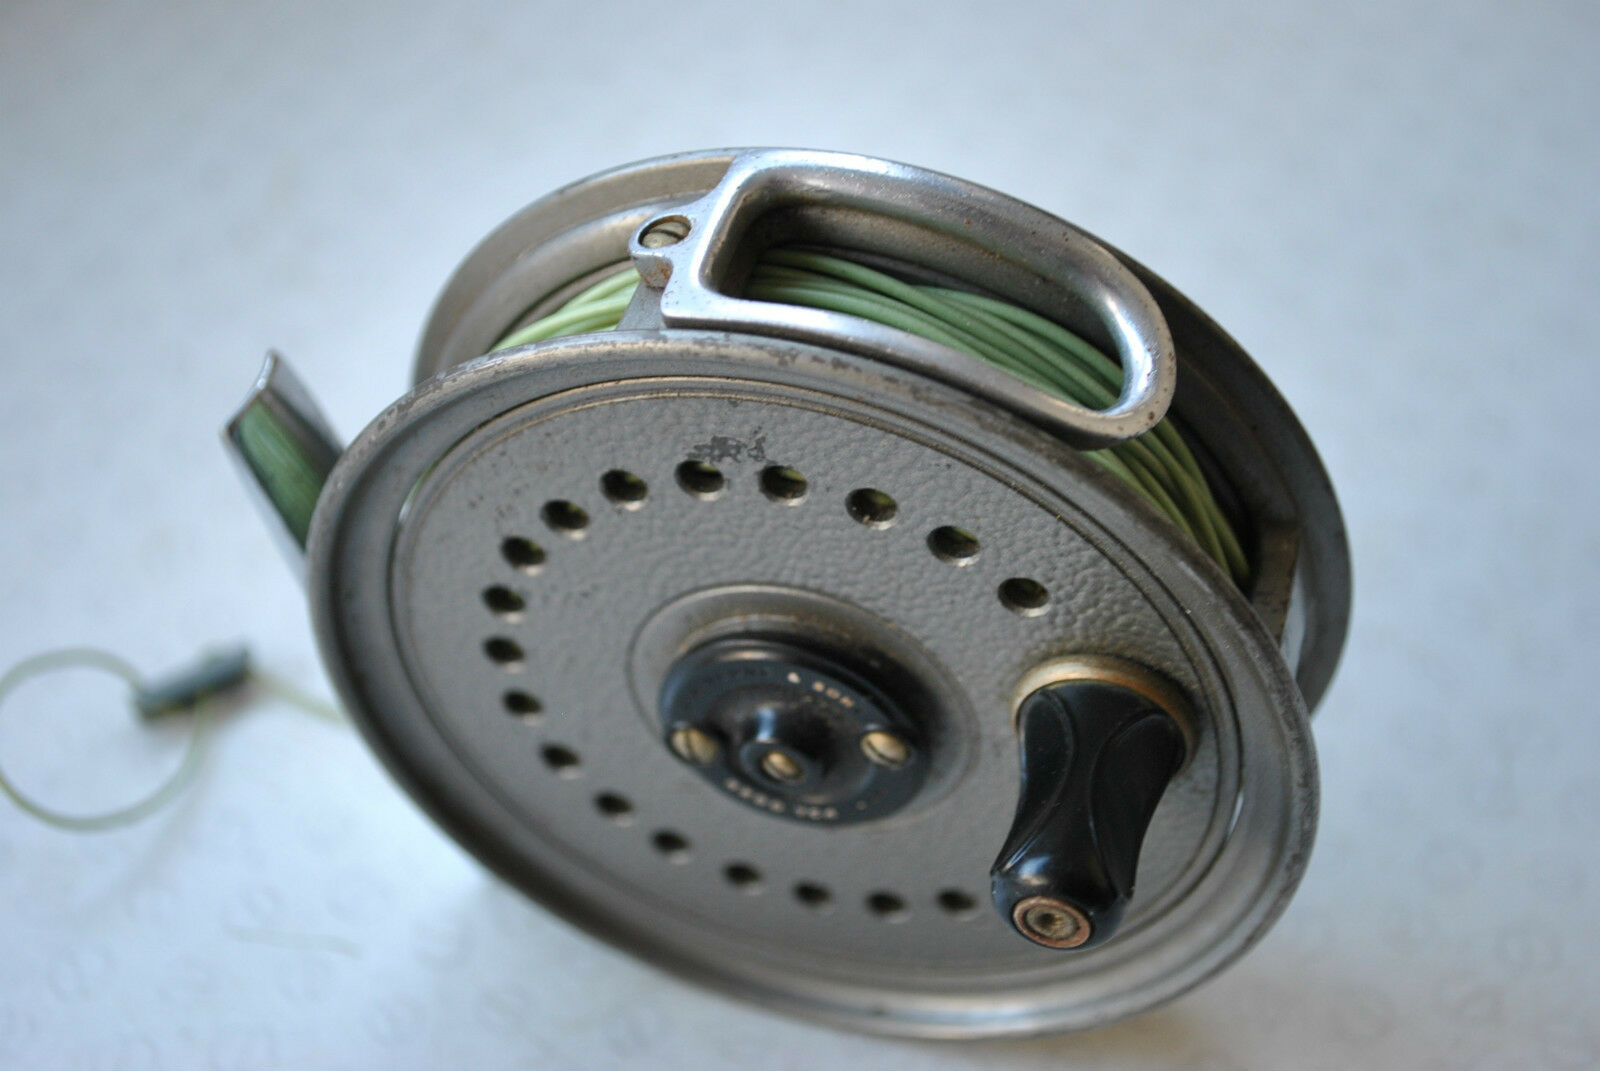 A VERY GOOD VINTAGE J W YOUNG 3 1  2  BEAUDEX TROUT FLY REEL + LINE  clearance up to 70%